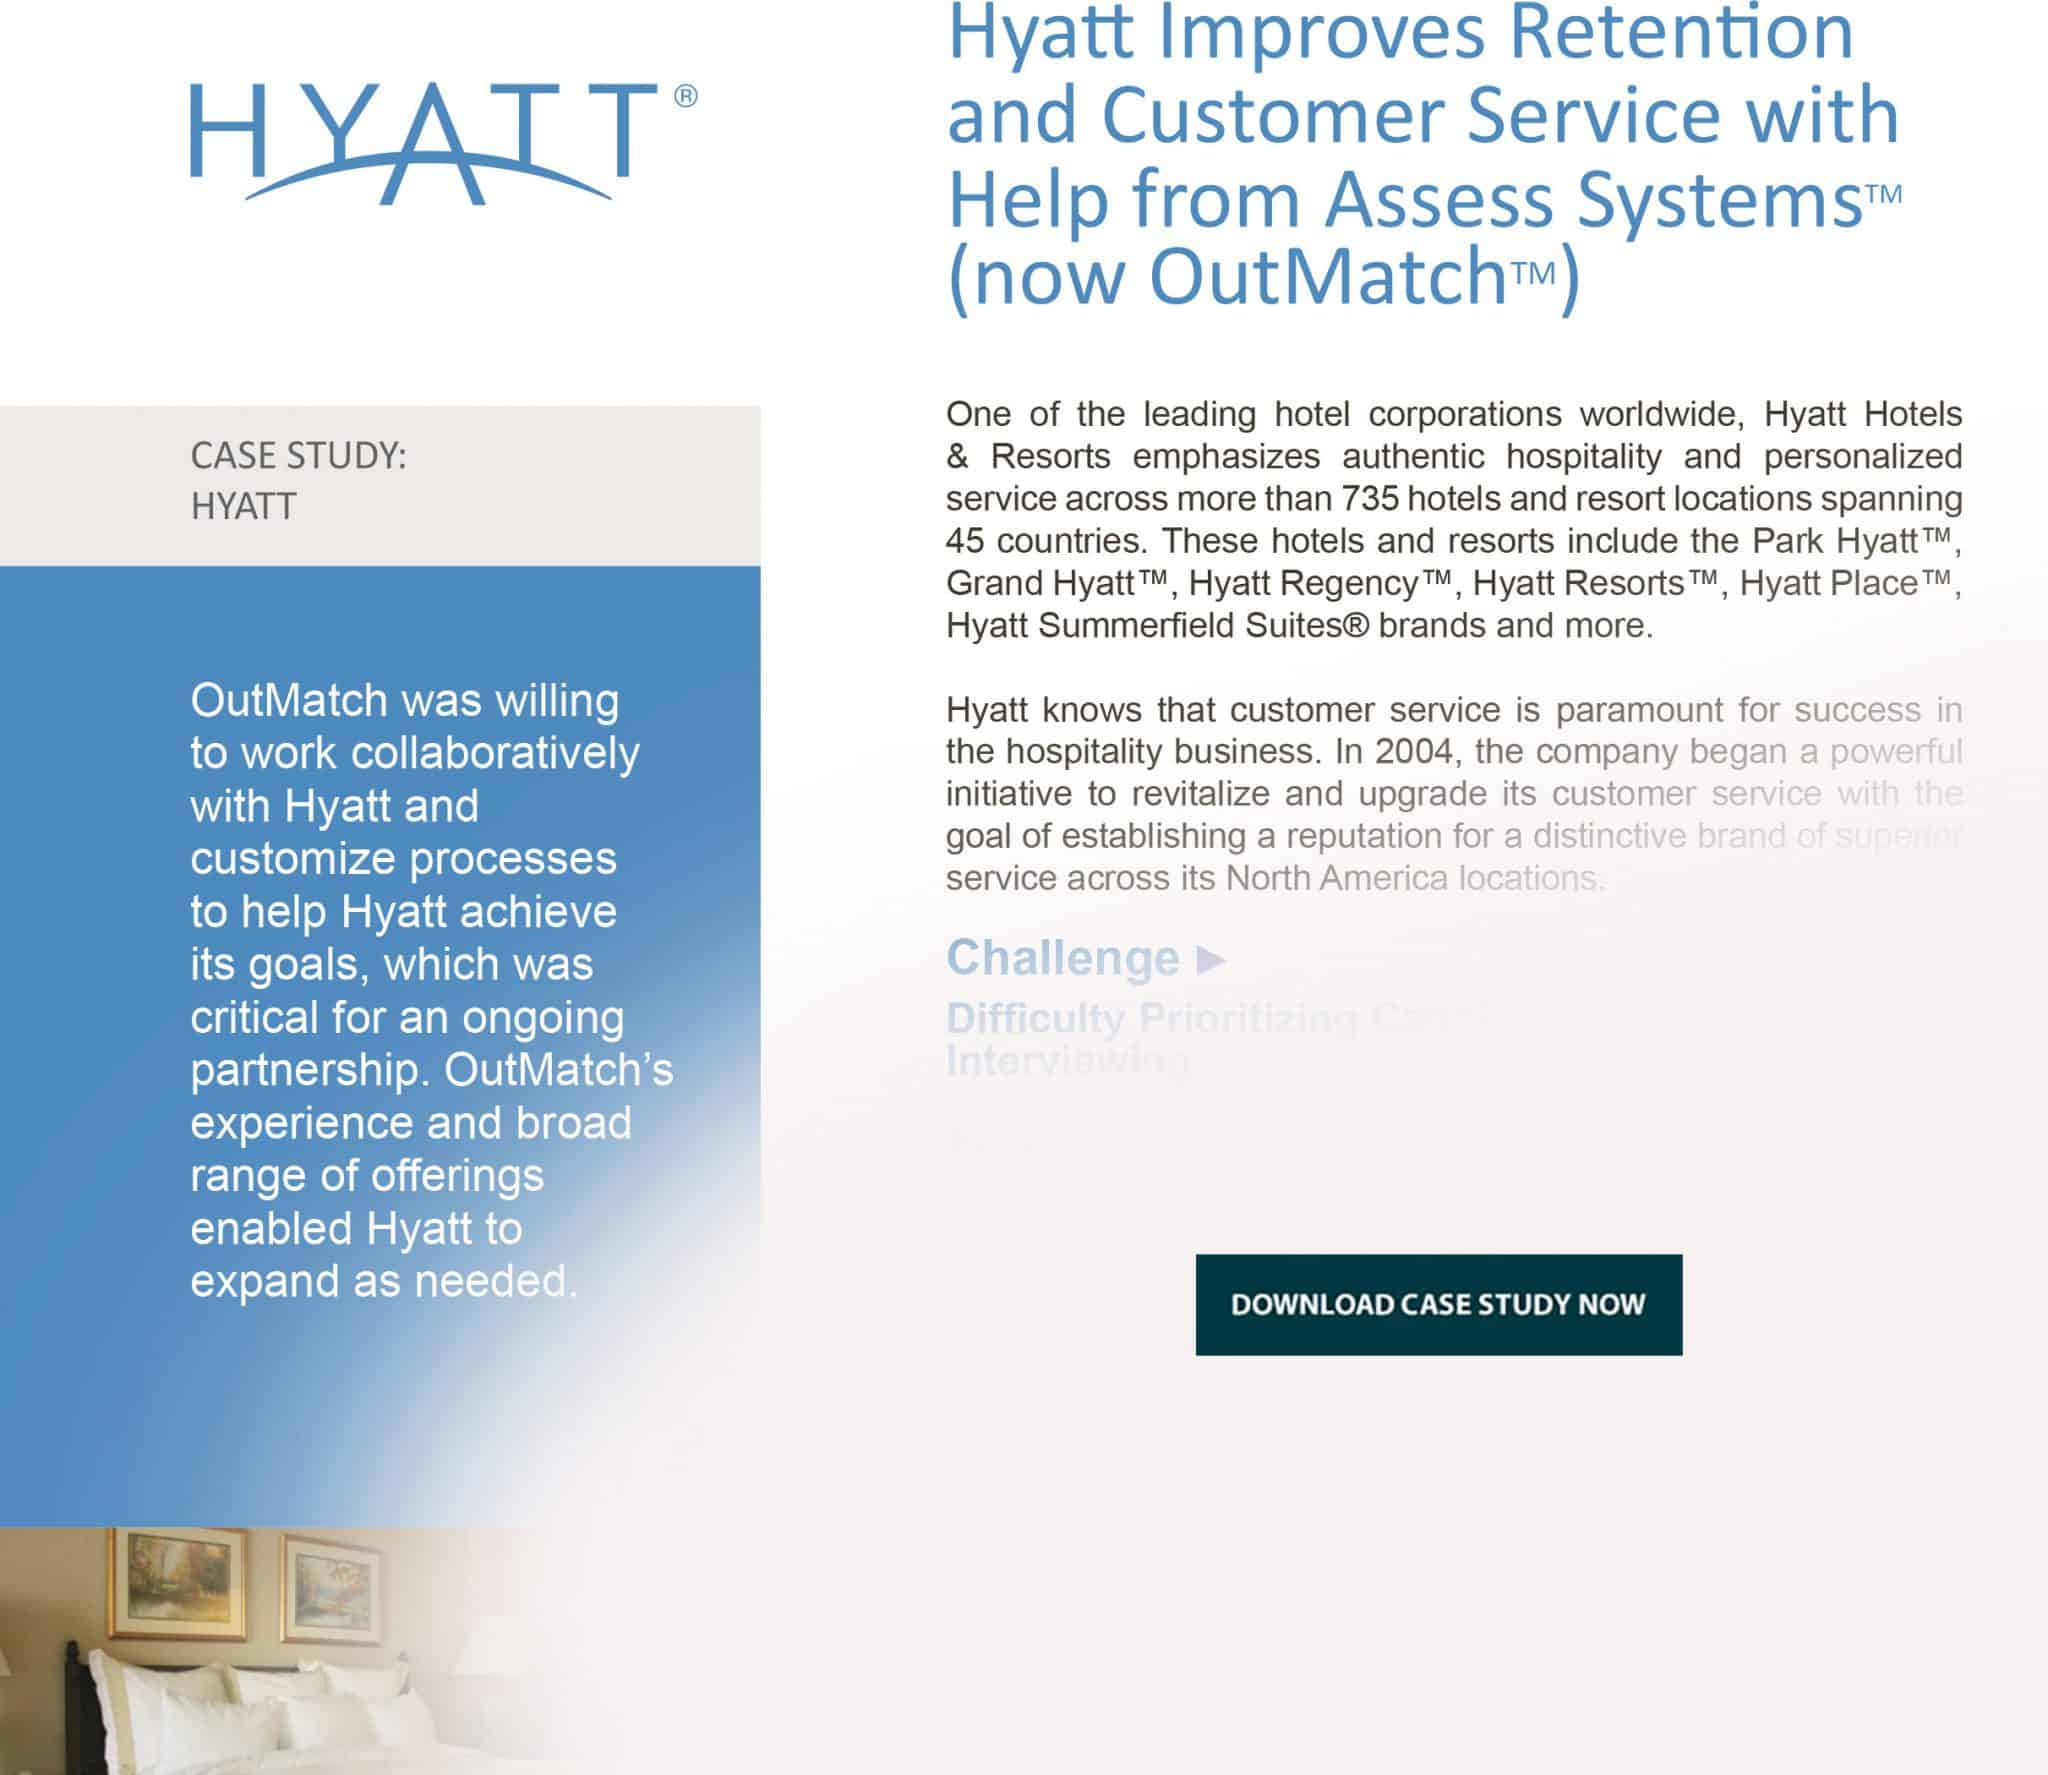 case-study-hyatt-selection-fade_button